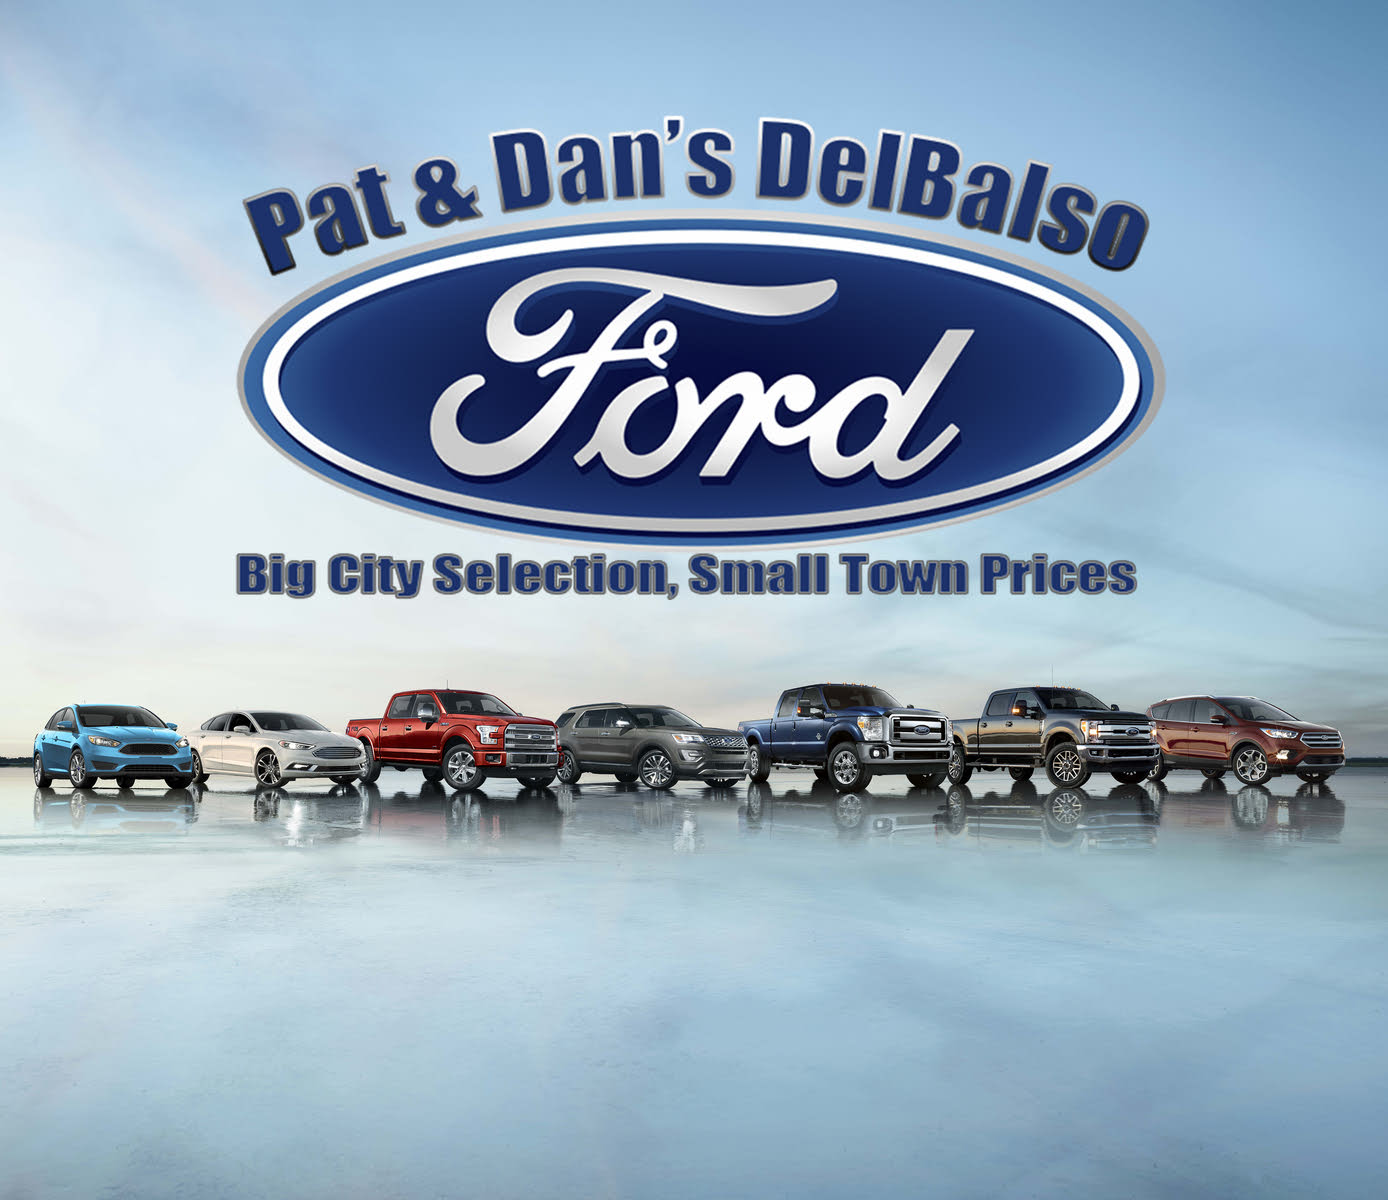 Pat And Dan Del Balso Ford - Kingston, PA: Read Consumer reviews, Browse  Used and New Cars for Sale